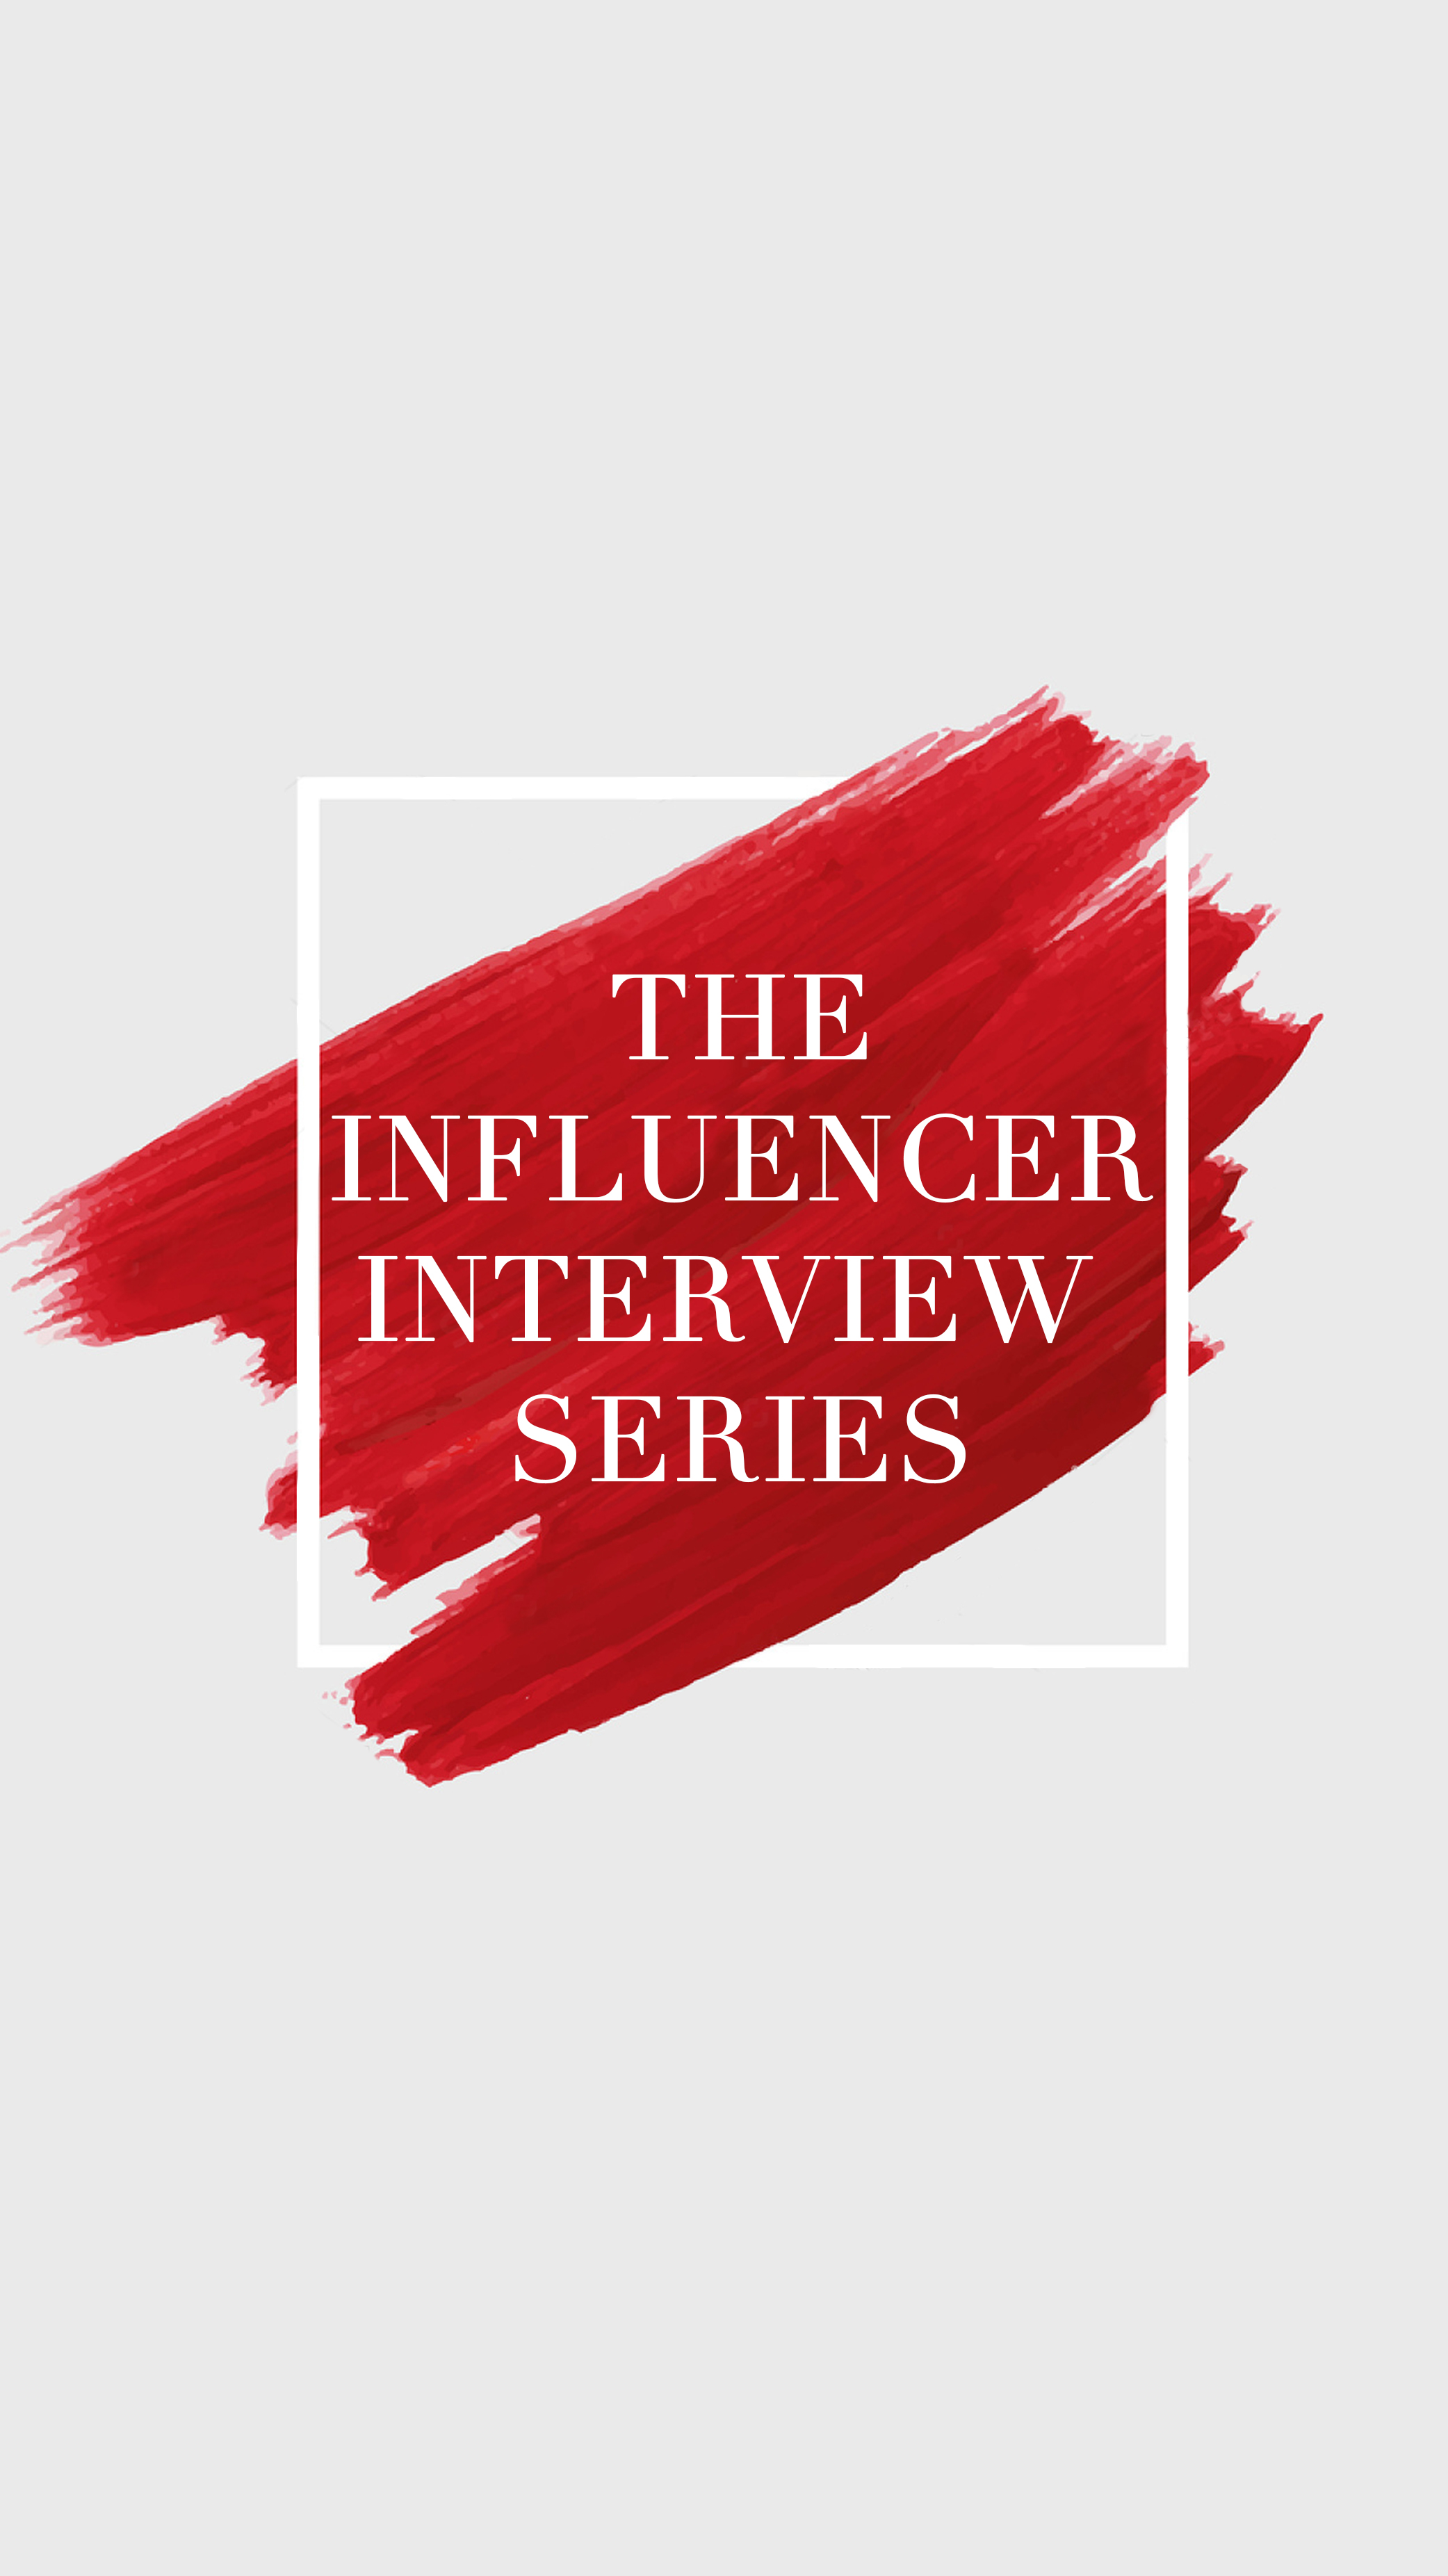 Introducing The Influencer Interview Series (Get Excited)